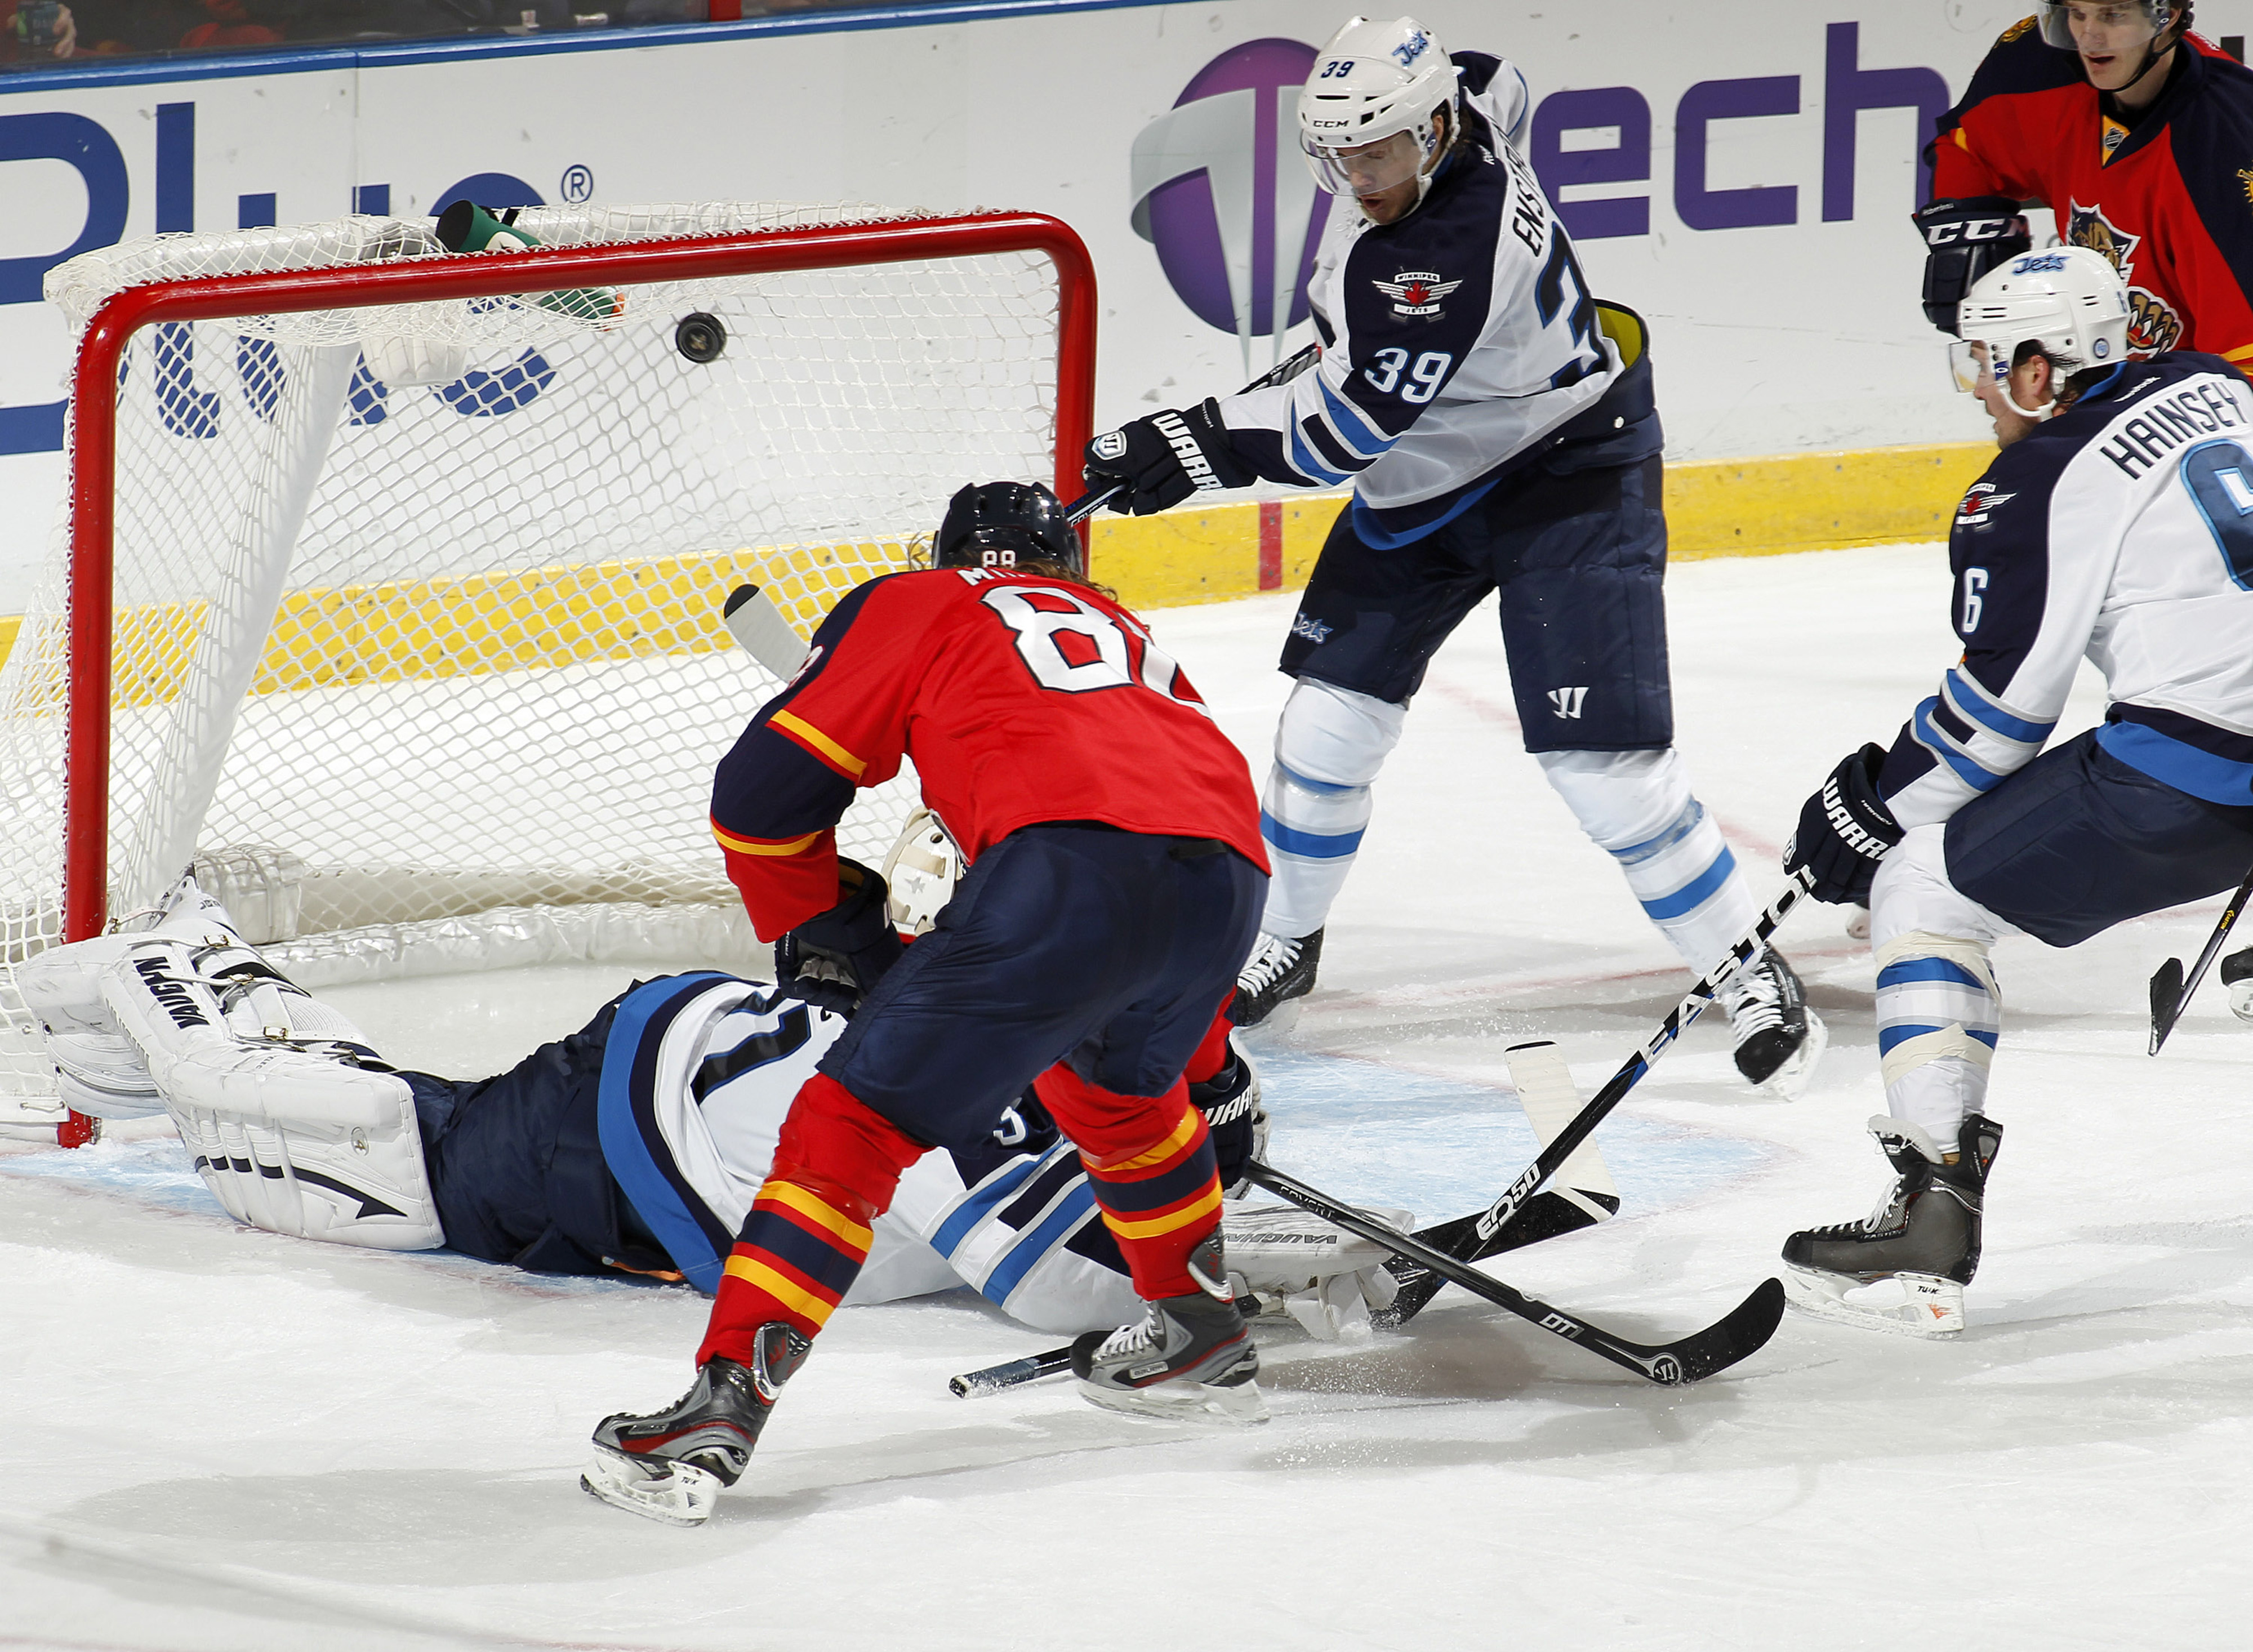 Peter Mueller was one of 6 goal scorers for the Panthers when they got back in the win column this week, over the visiting Winnipeg Jets. Jets will try to return the favor Tuesday at the MTS Centre.